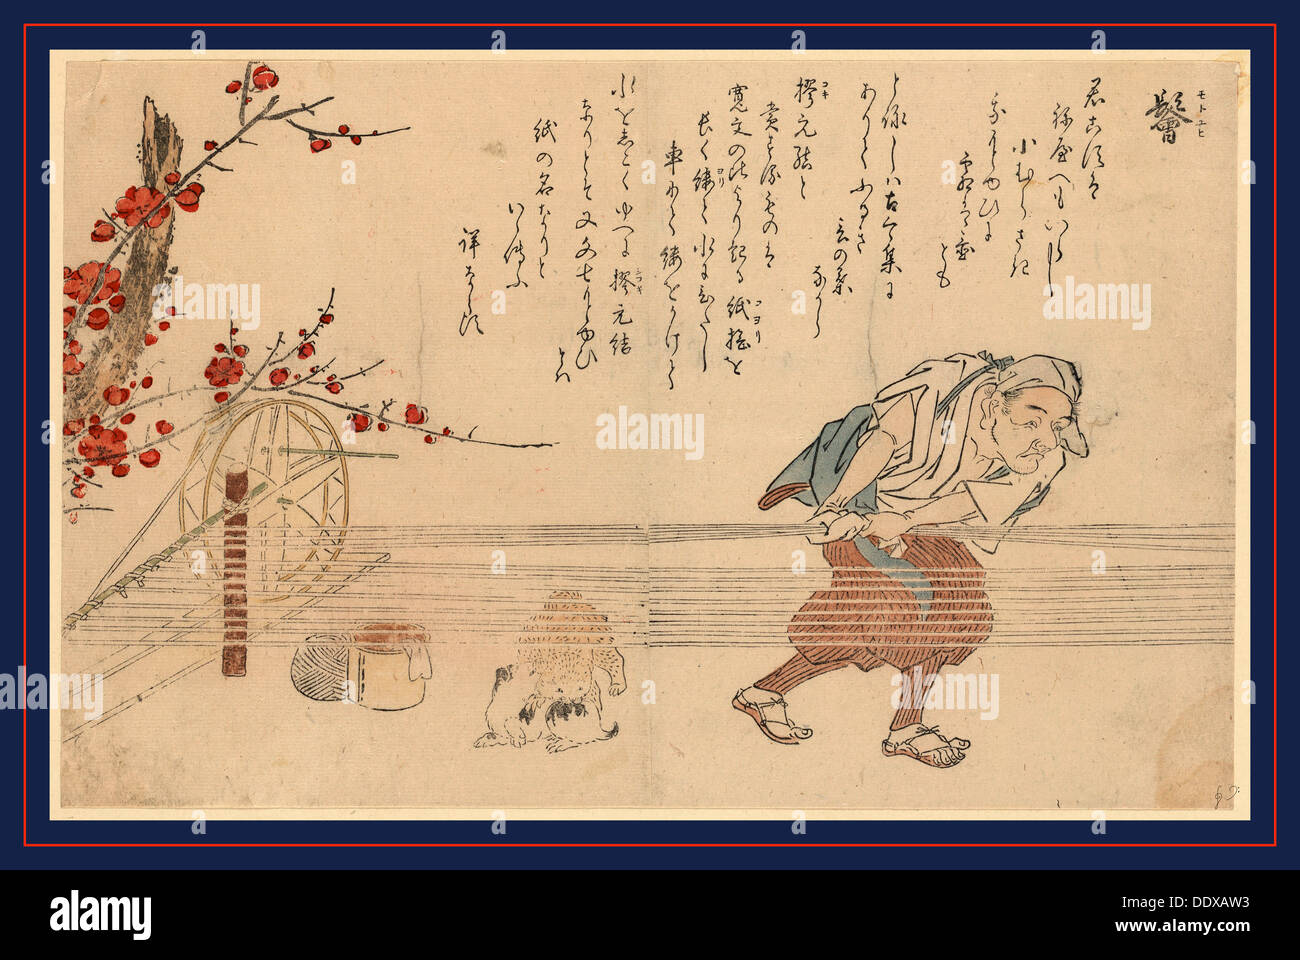 Motoyui, Hair ties. 1770., 1 print : woodcut, color ; 20.1 x 31.5 cm., Print shows an old man working with strands of - Stock Image